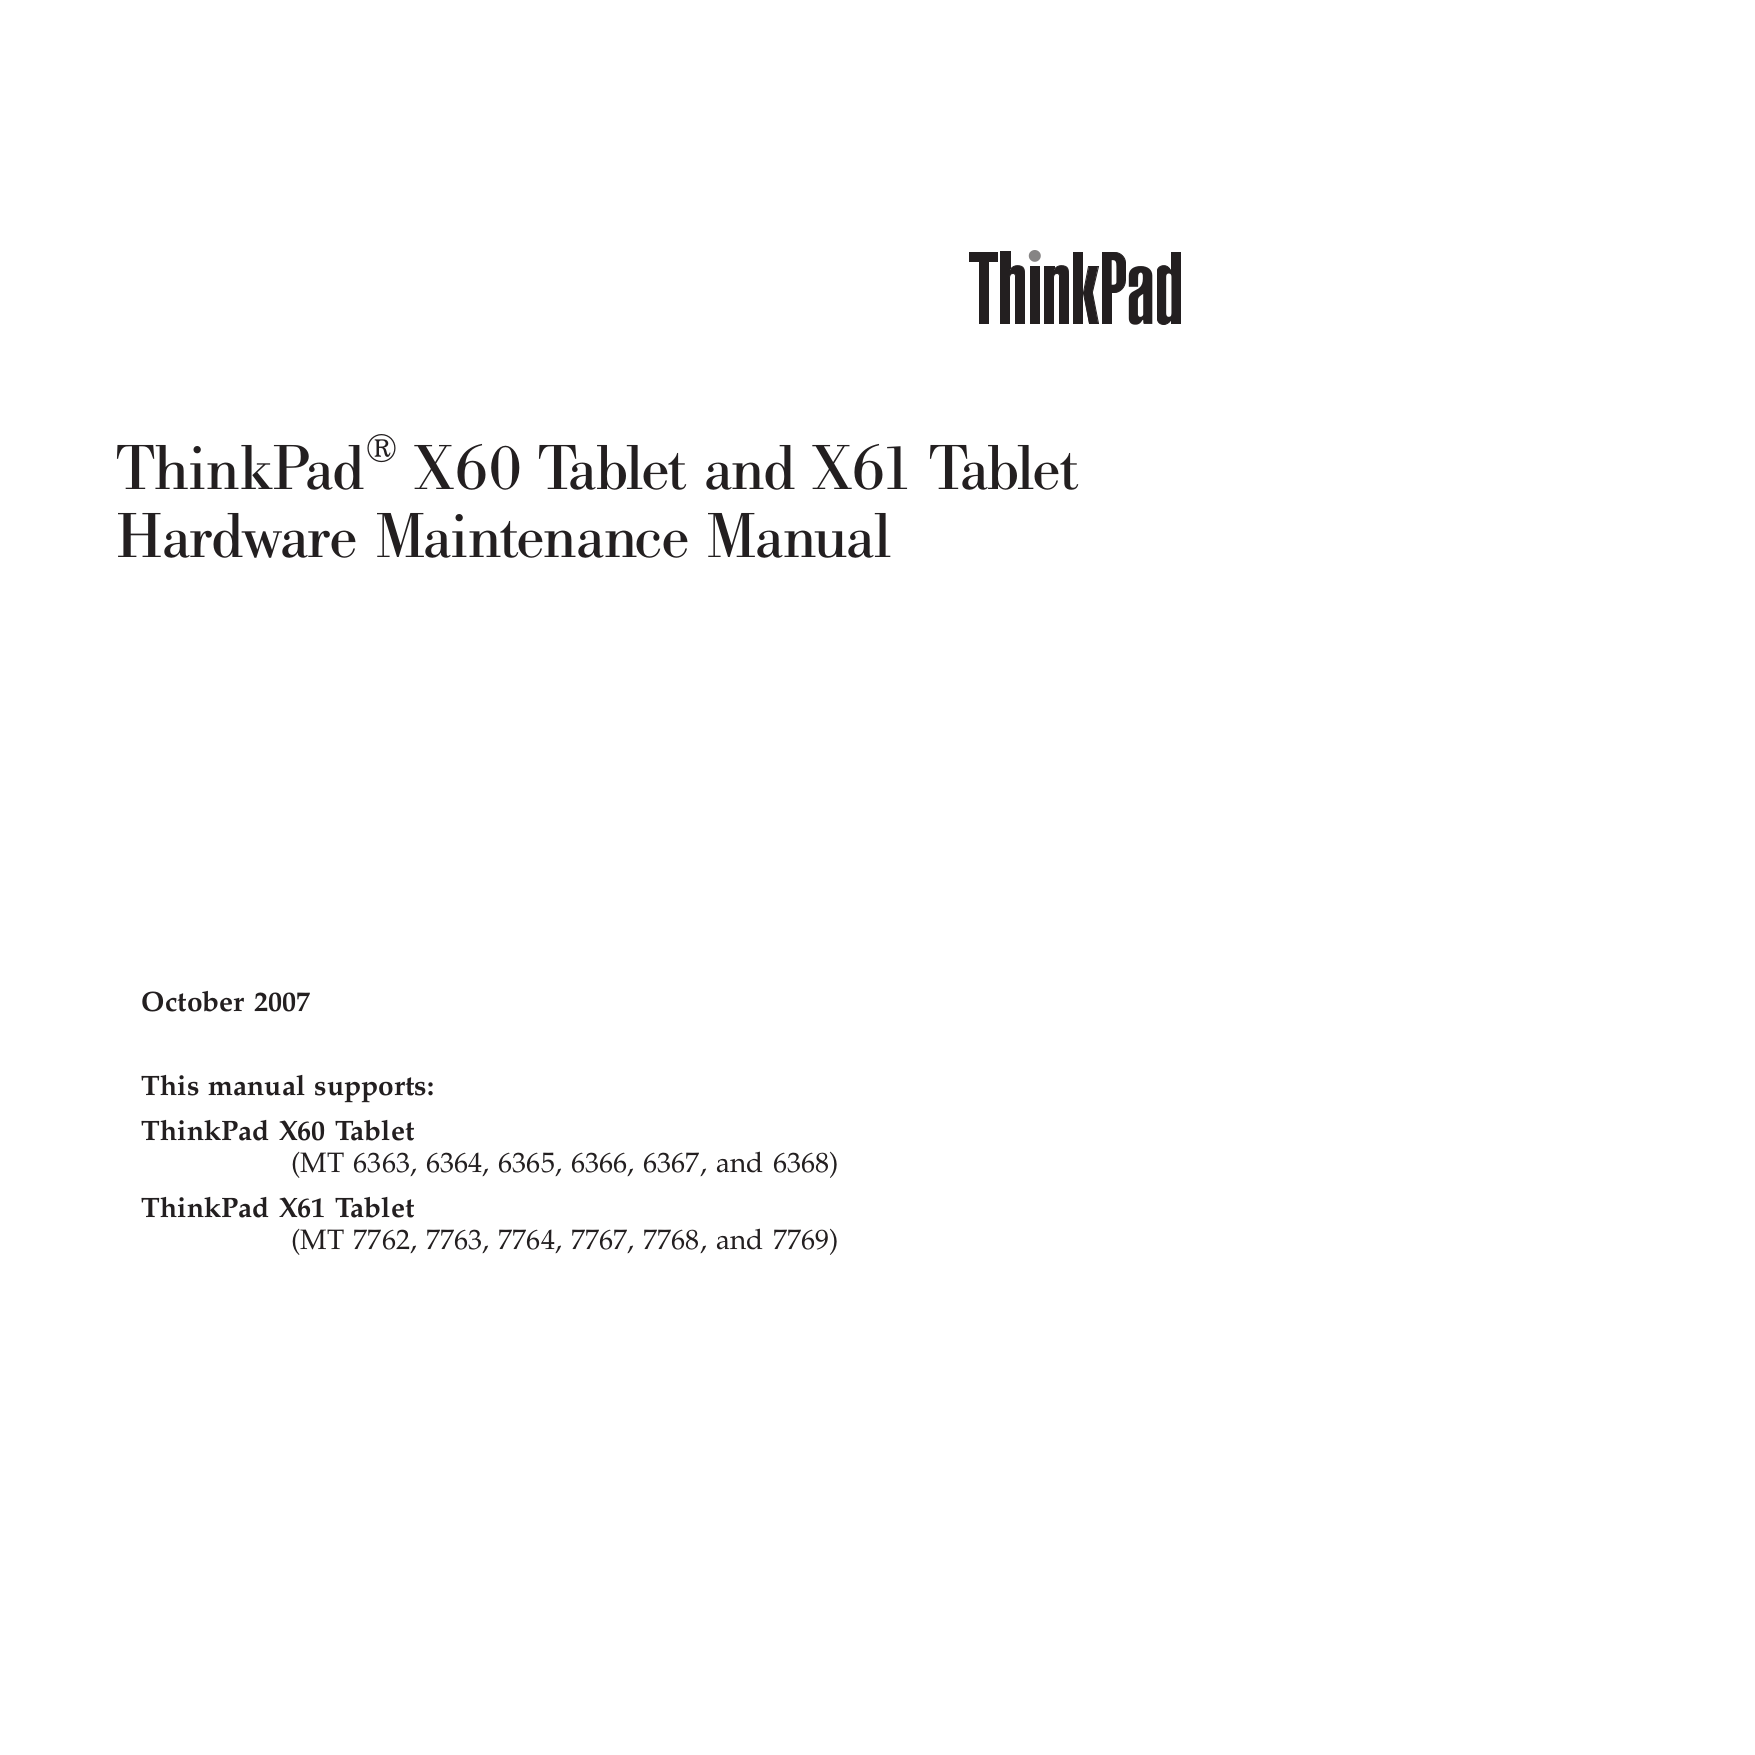 Lenovo thinkpad x61 laptop download instruction manual pdf.